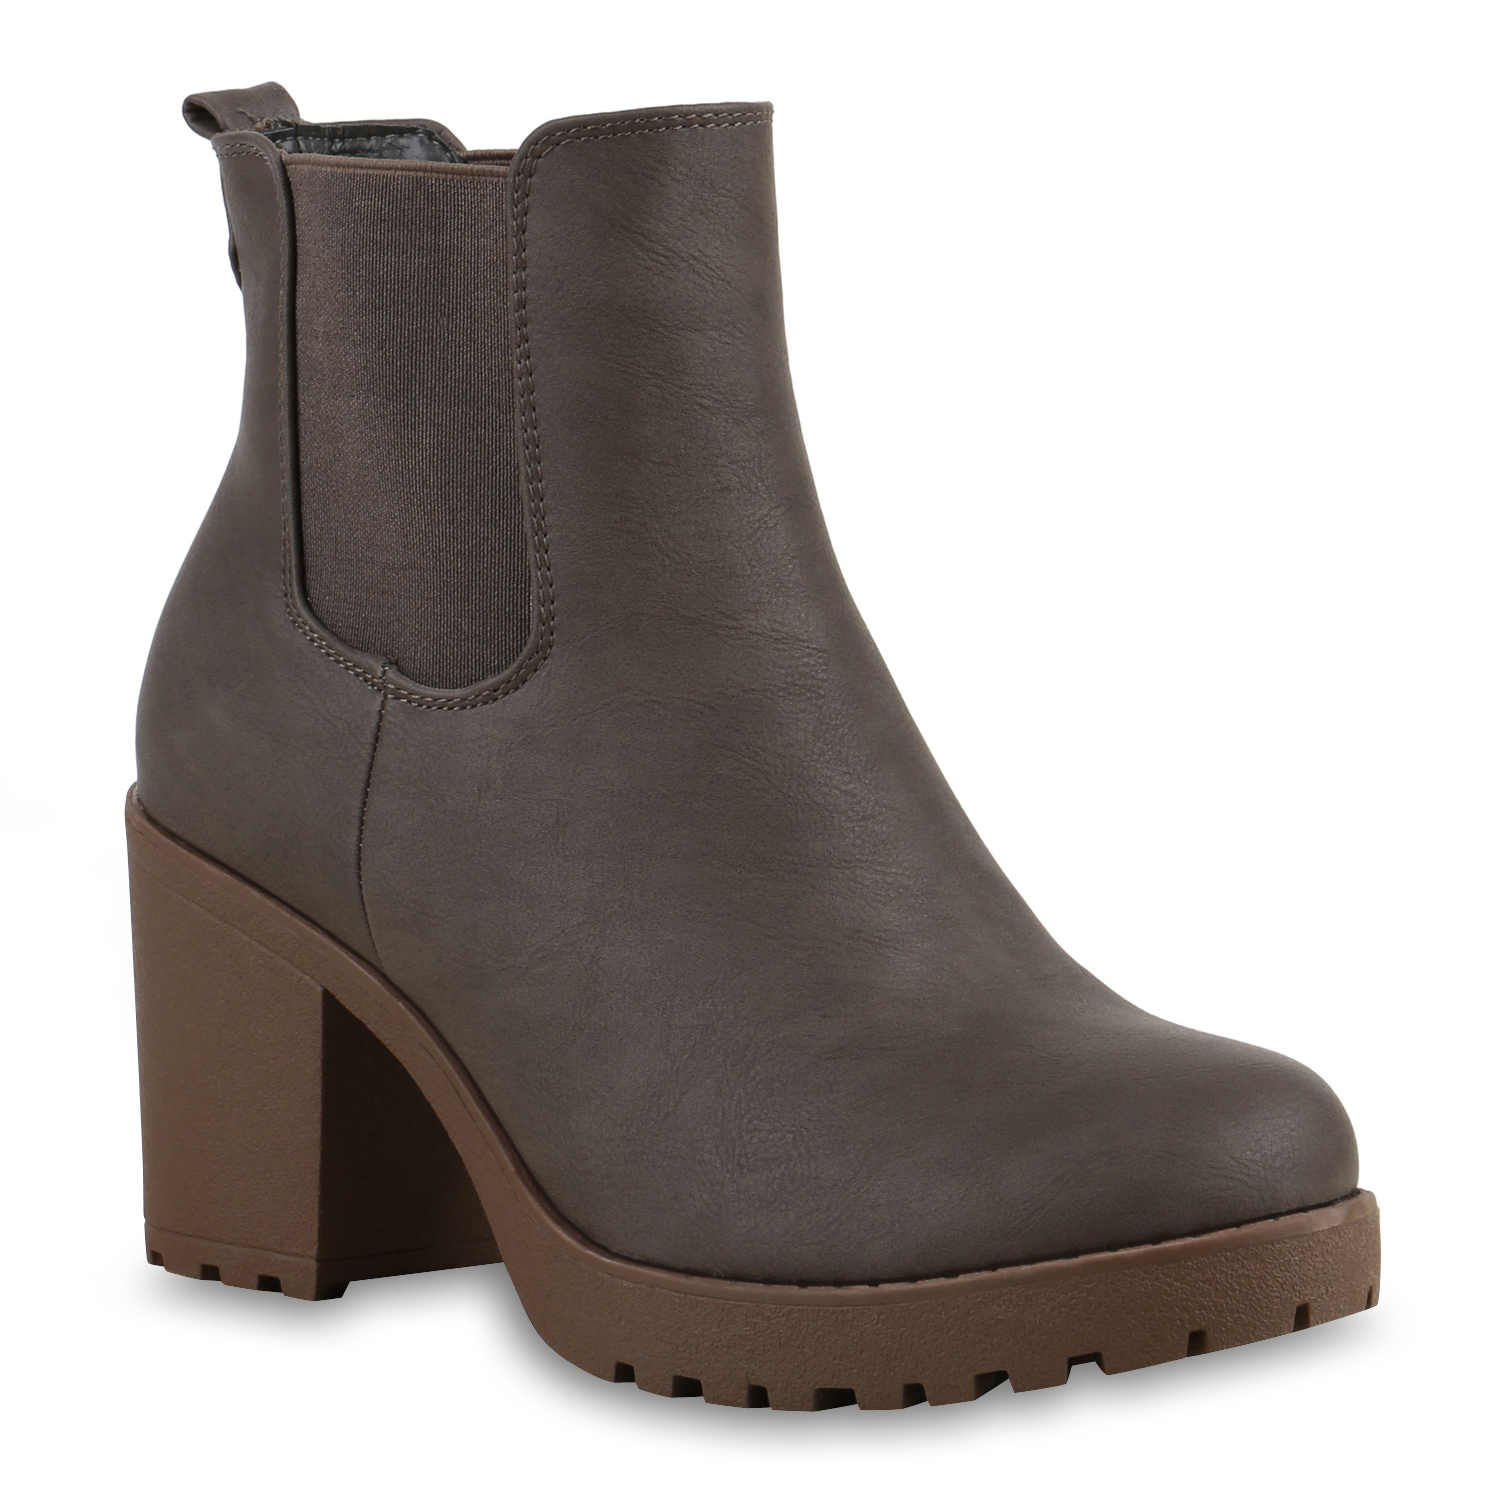 damen stiefeletten chelsea boots profilsohle 70 s schuhe 76870 mode ebay. Black Bedroom Furniture Sets. Home Design Ideas